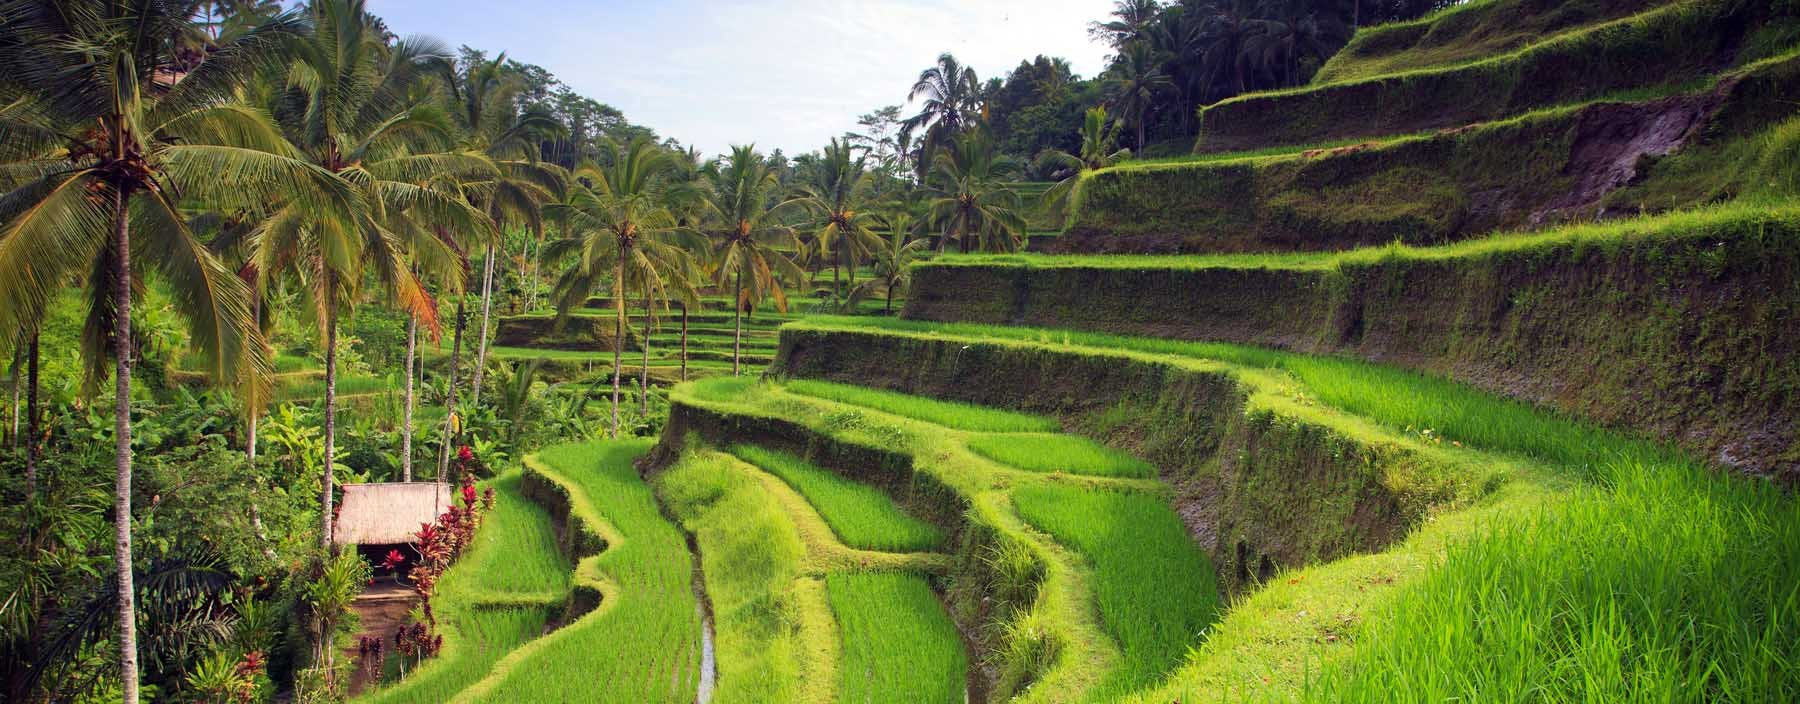 id, bali, terrace rice fields in tegallalang (2).jpg